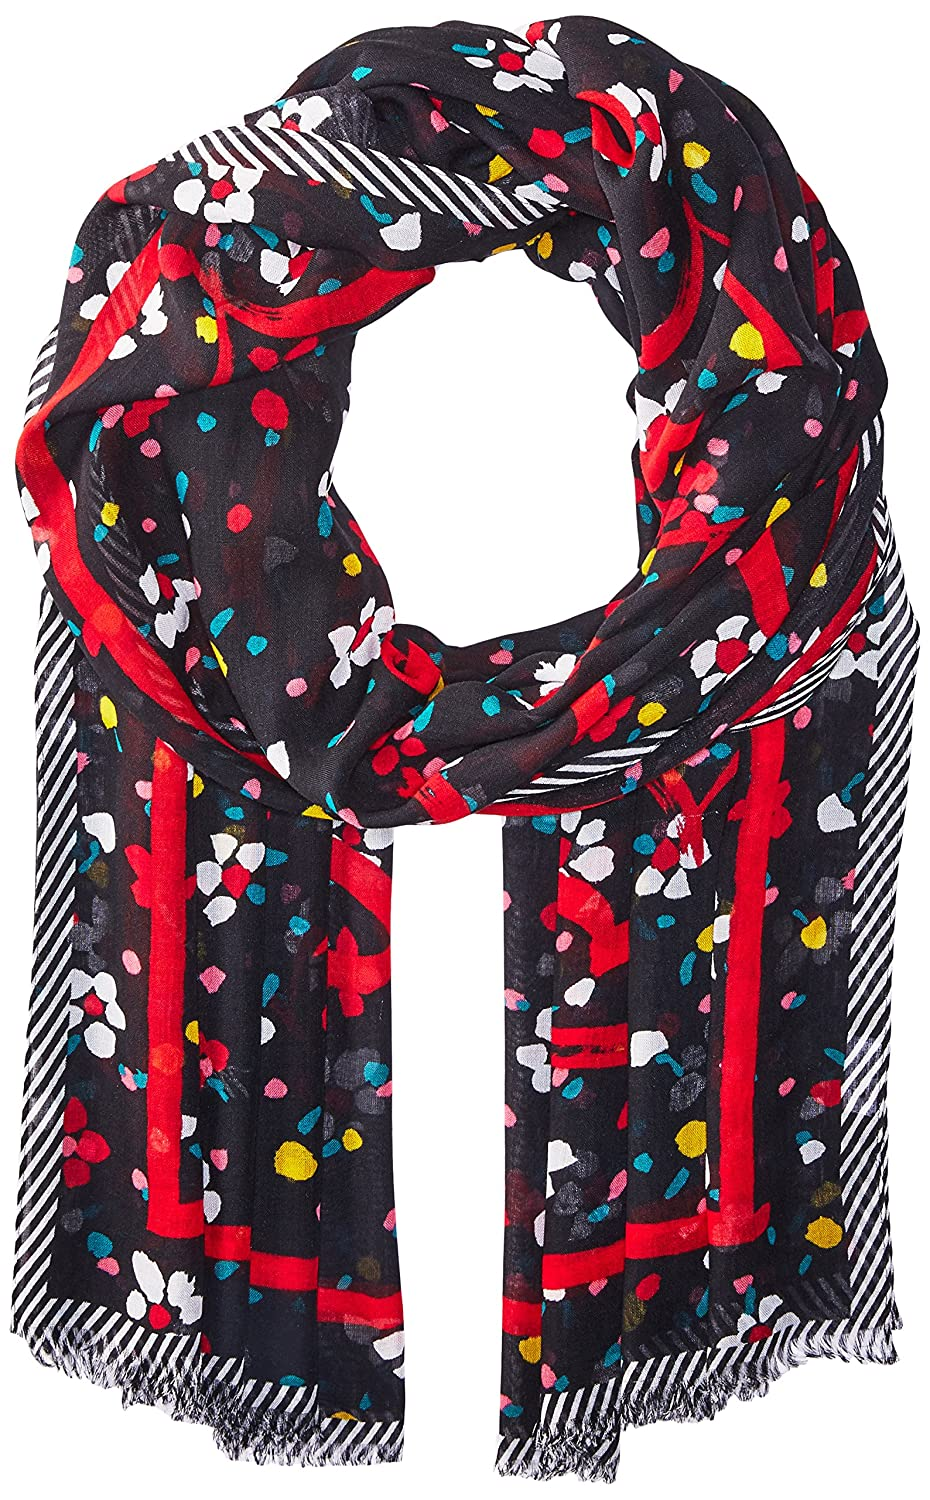 Marc Jacobs Women's Painted Flowers and Hearts Stole Scarf black/multi One Size M0012351